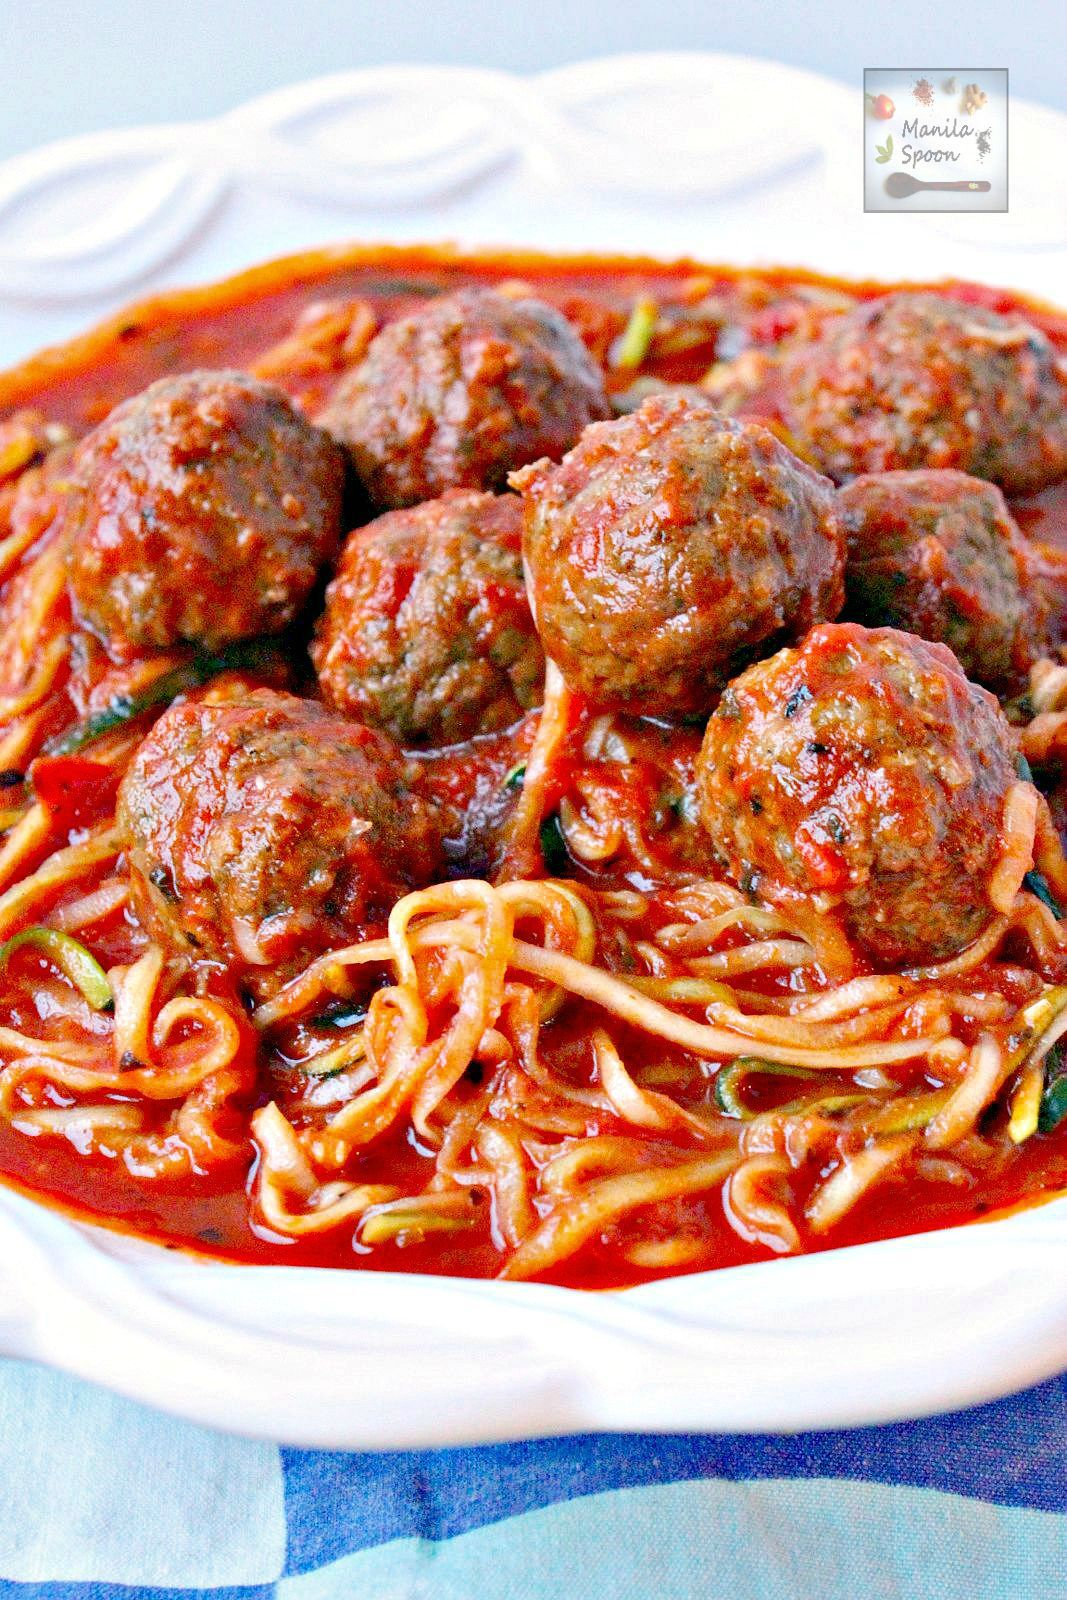 One Pot Meatballs and Zoodles (Zucchini Noodles)